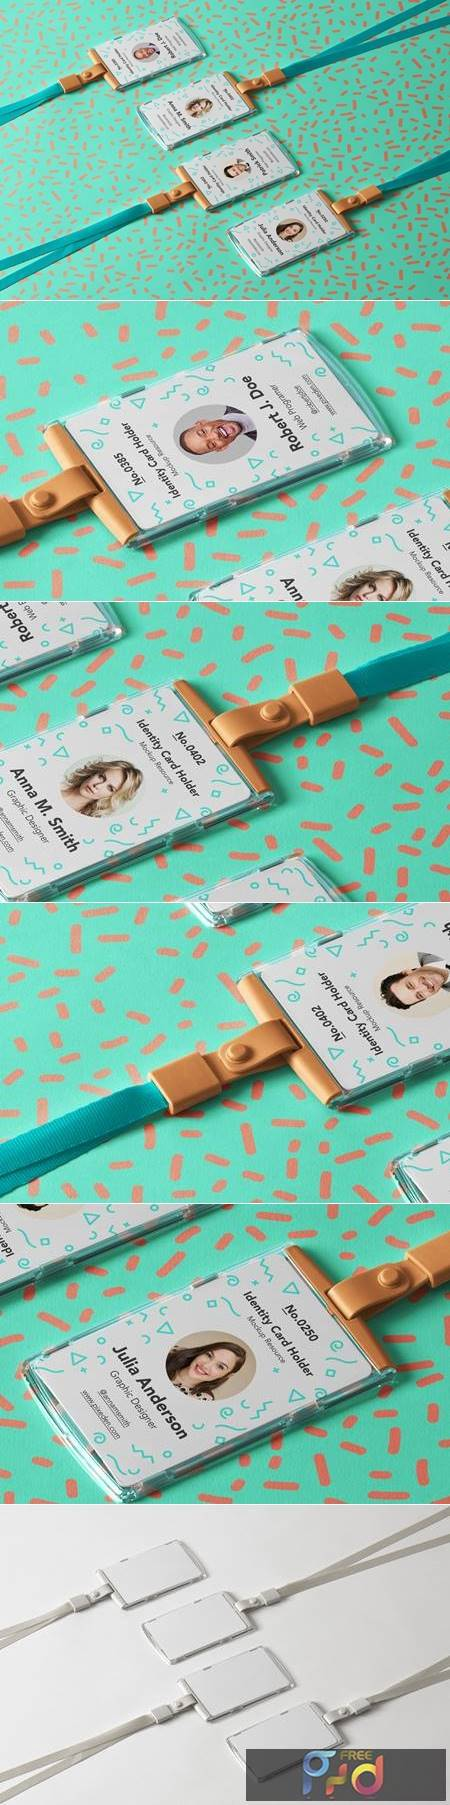 ID Card Holder Psd Mockup 1359 1